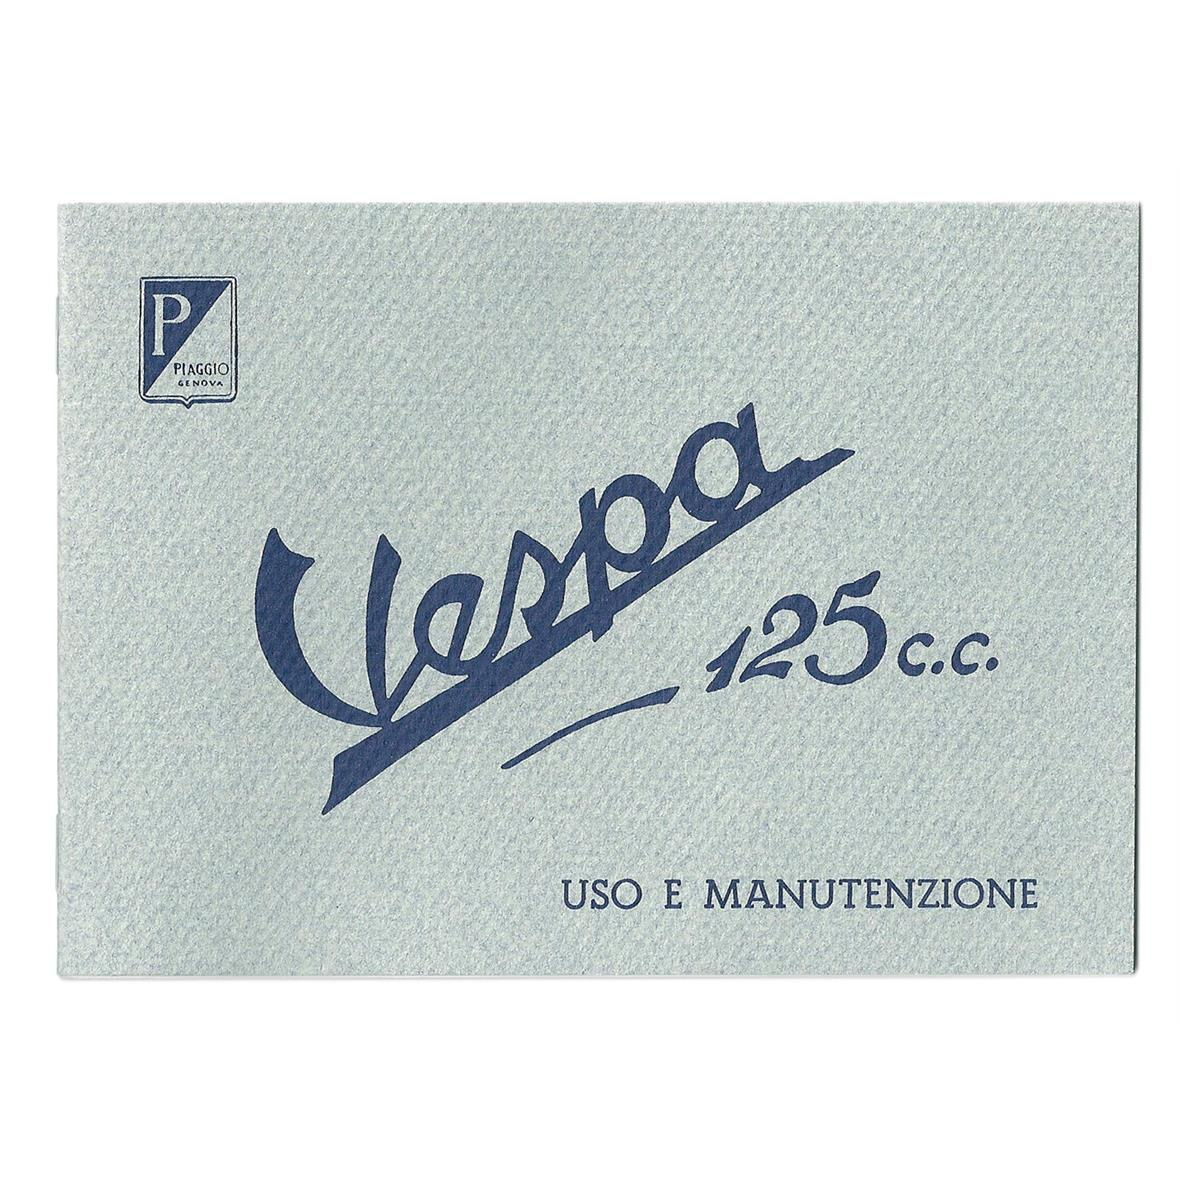 Product Image for 'Instruction Manual PIAGGIO Vespa 125 1948Title'